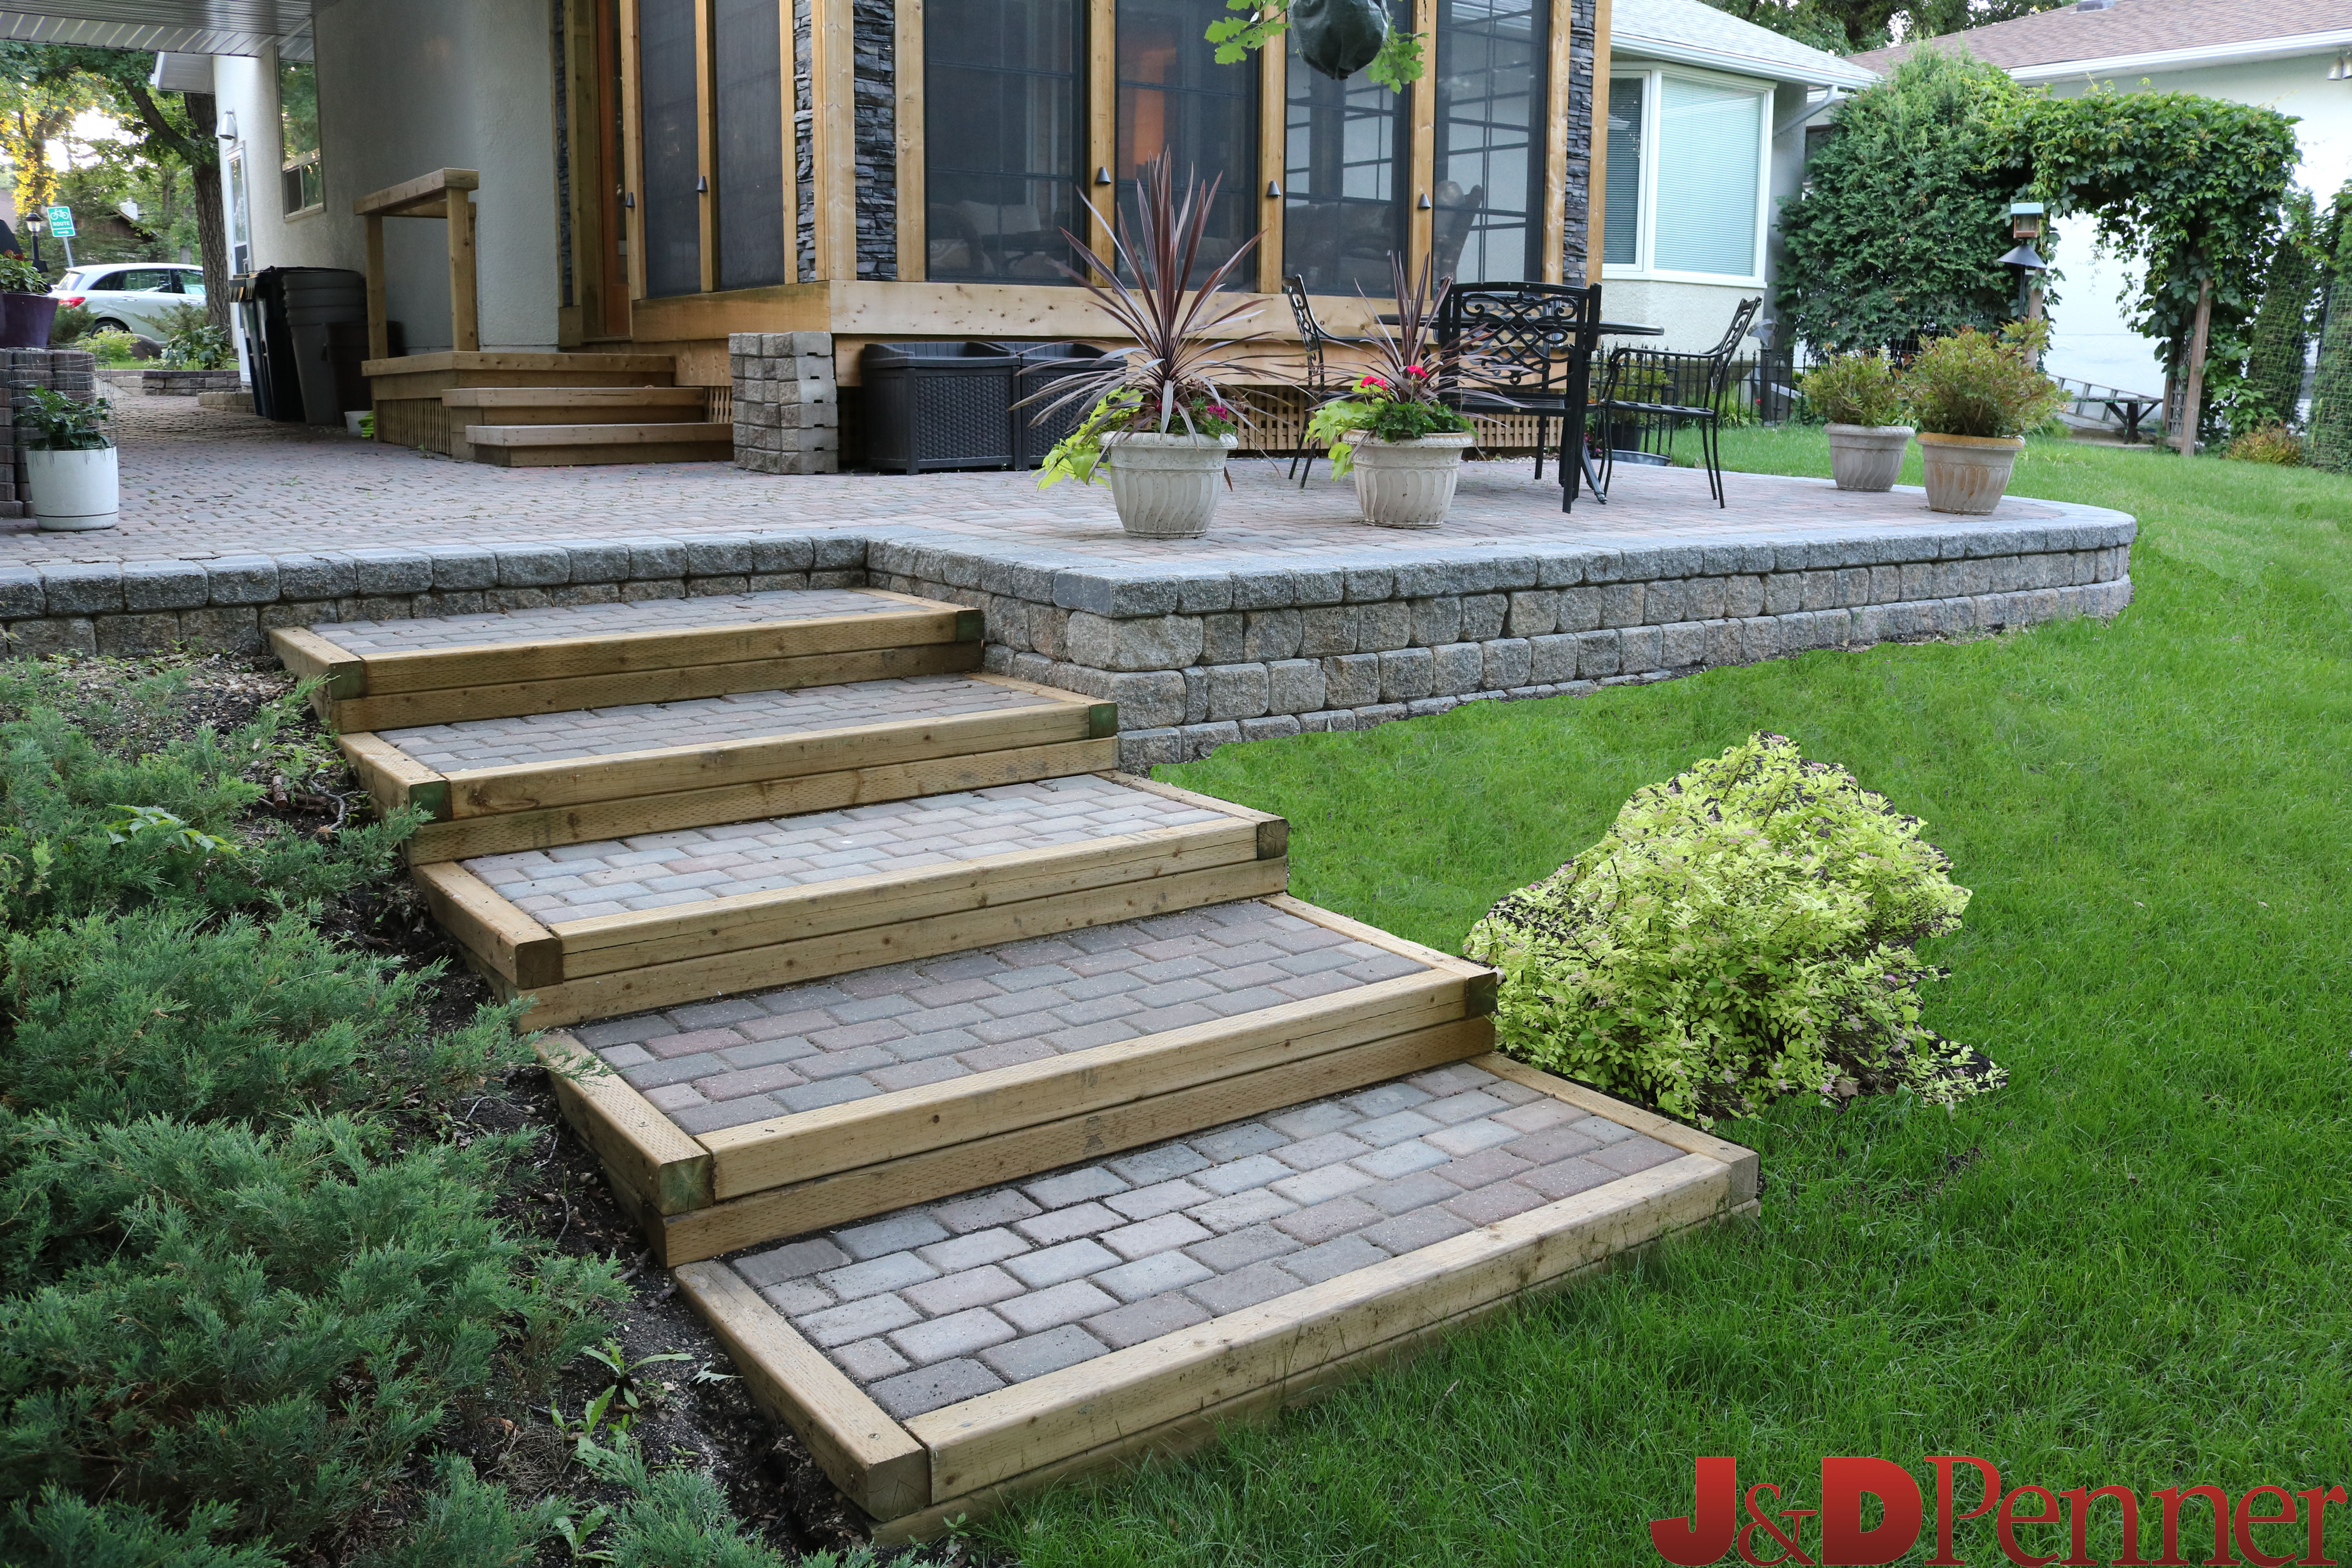 Stairs Project by J&D Penner, Winnipeg